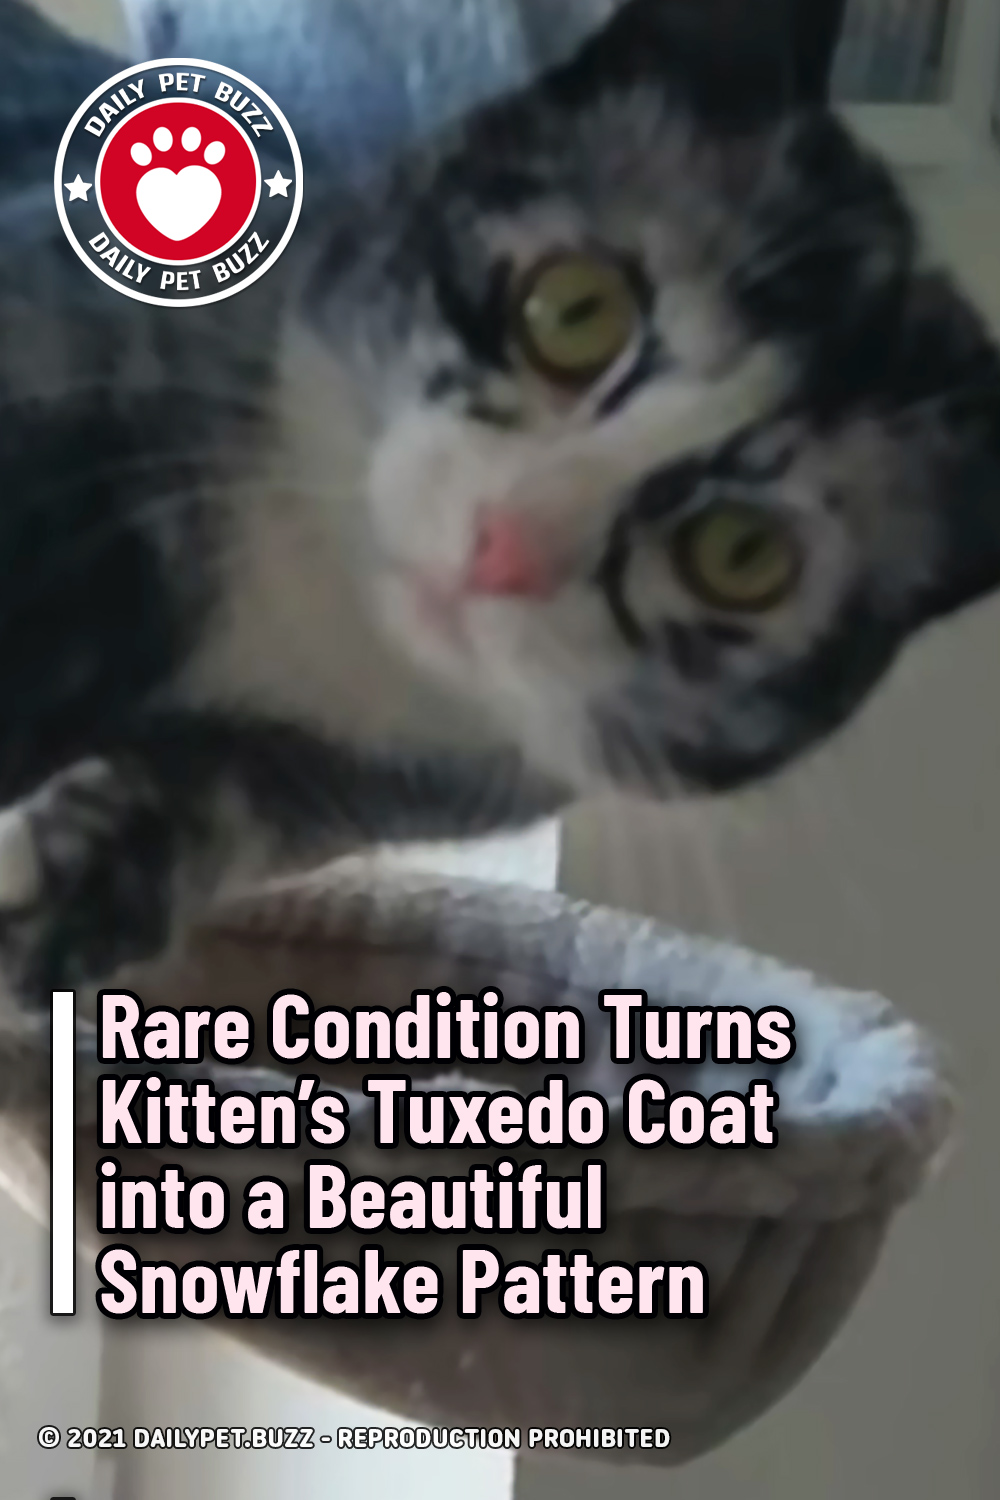 Rare Condition Turns Kitten's Tuxedo Coat into a Beautiful Snowflake Pattern